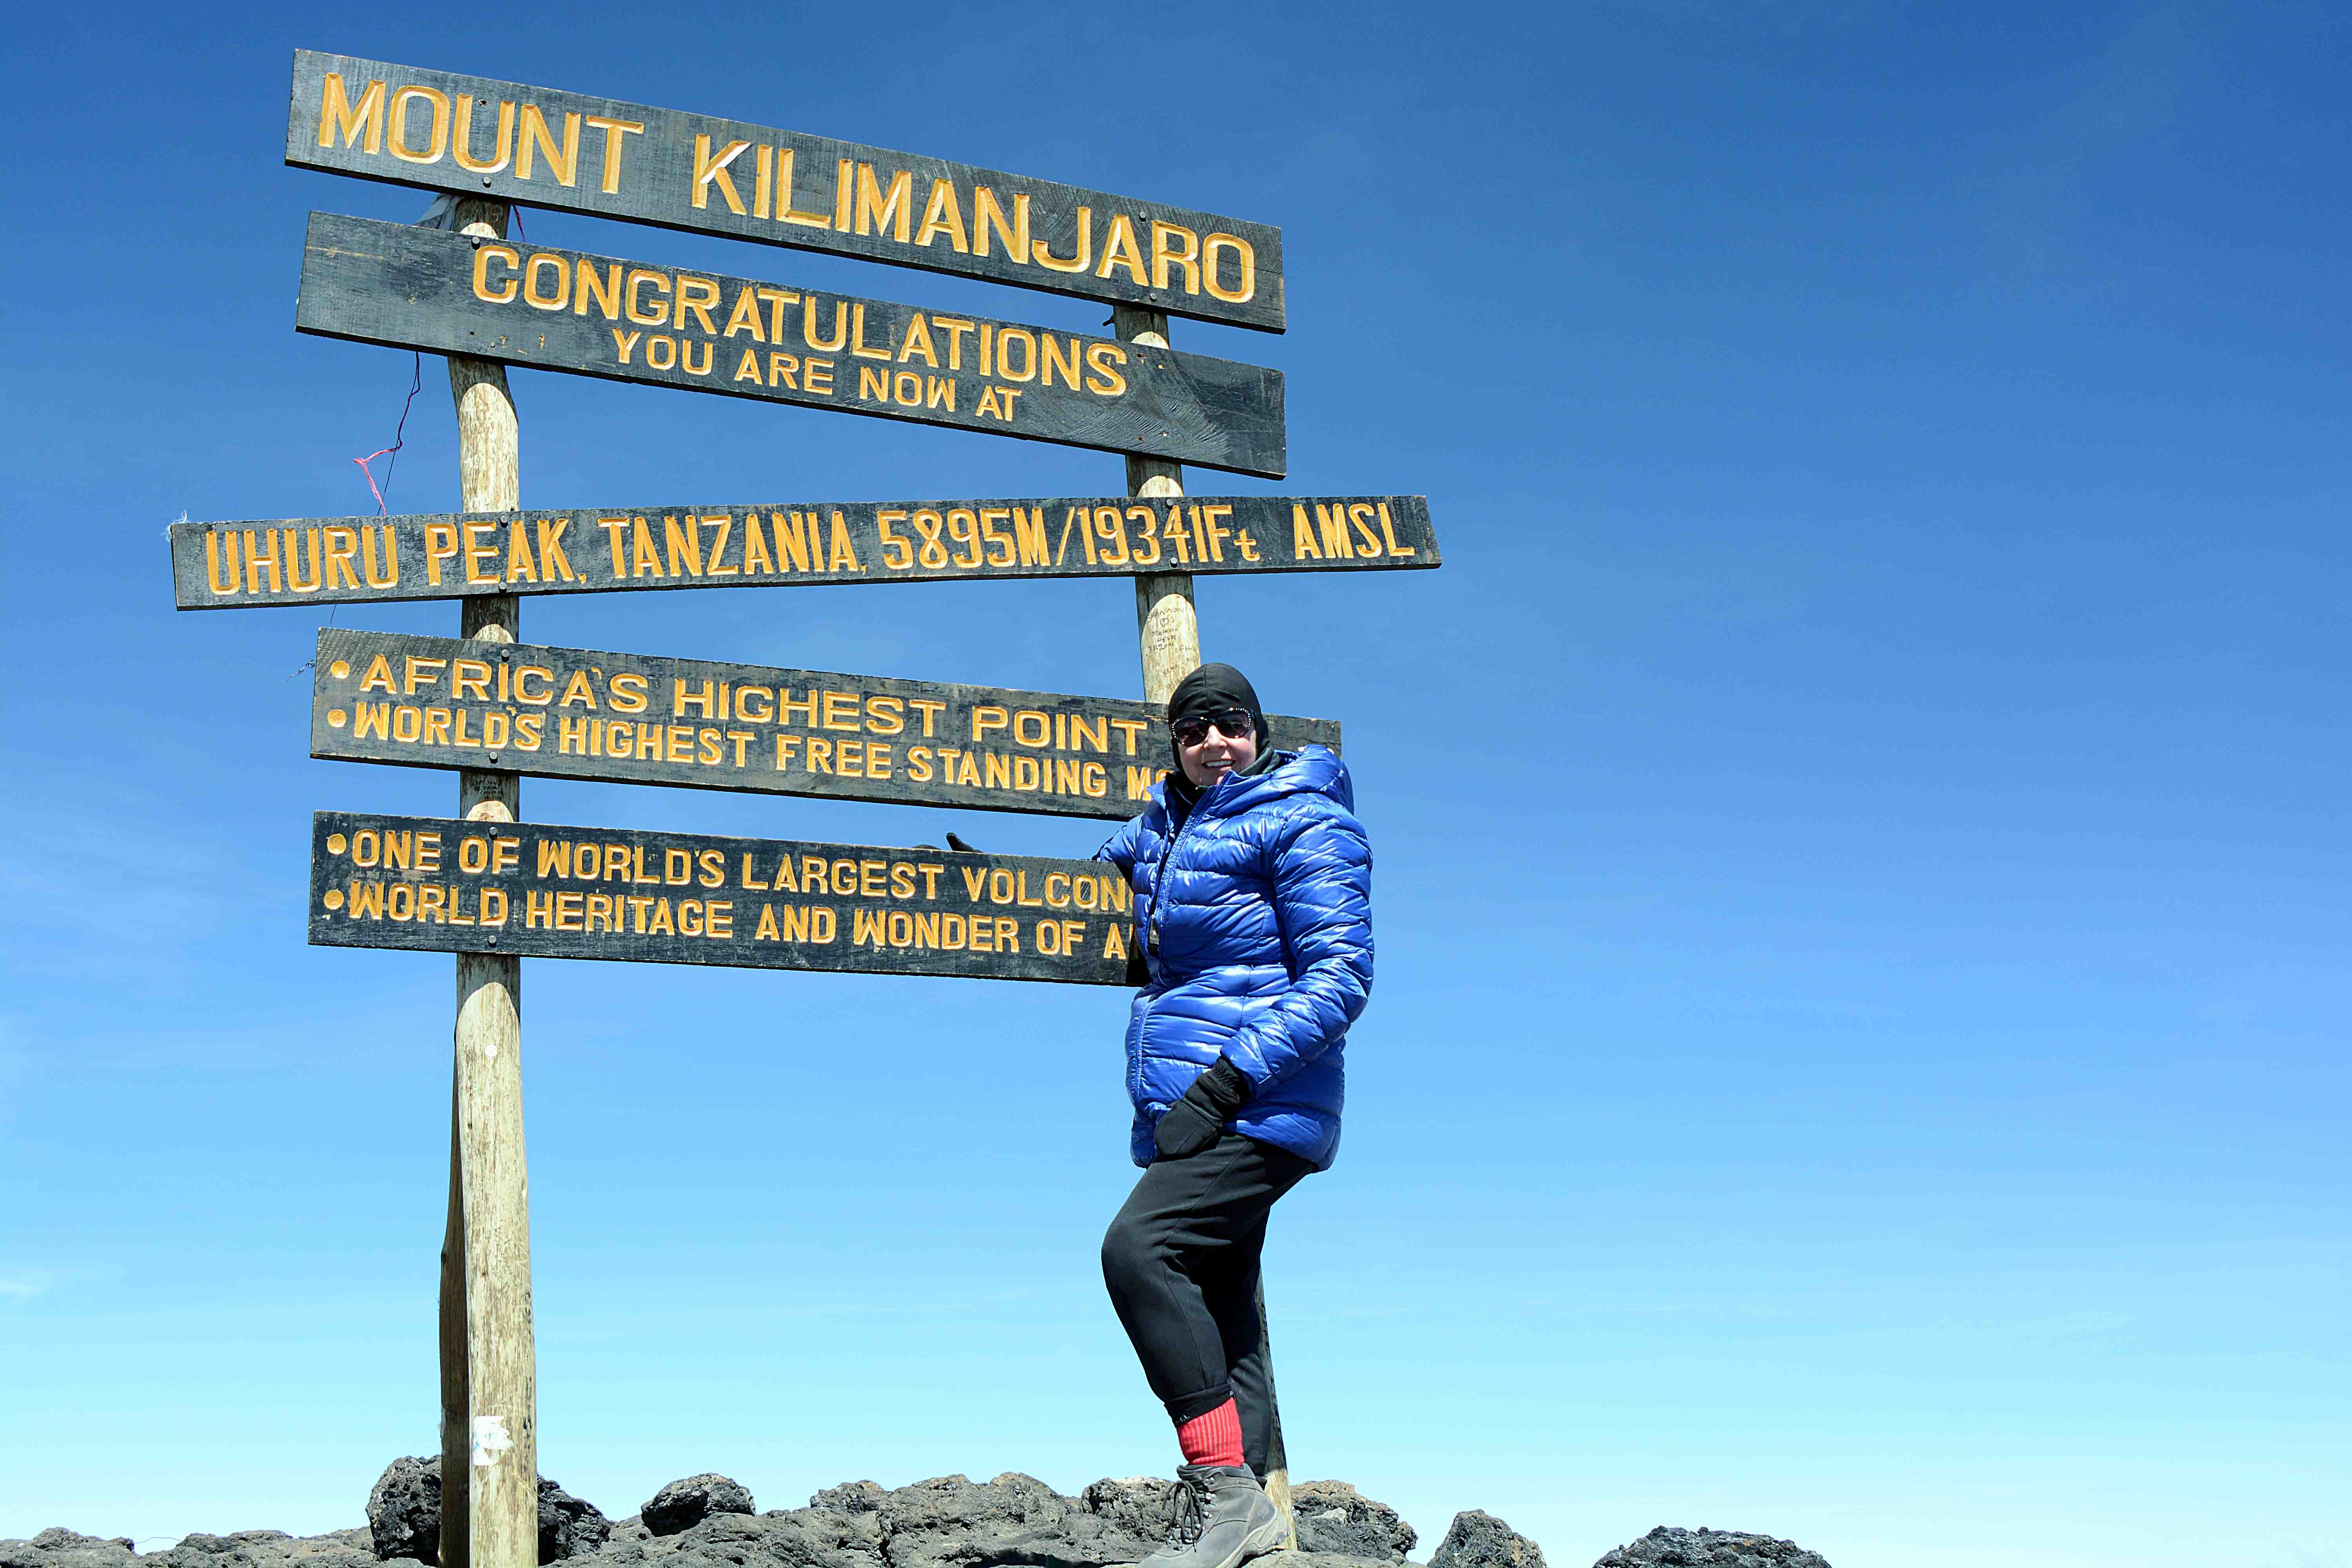 wp-content/uploads/itineraries/Kilimanjaro/kili-machame-summit (1).jpg